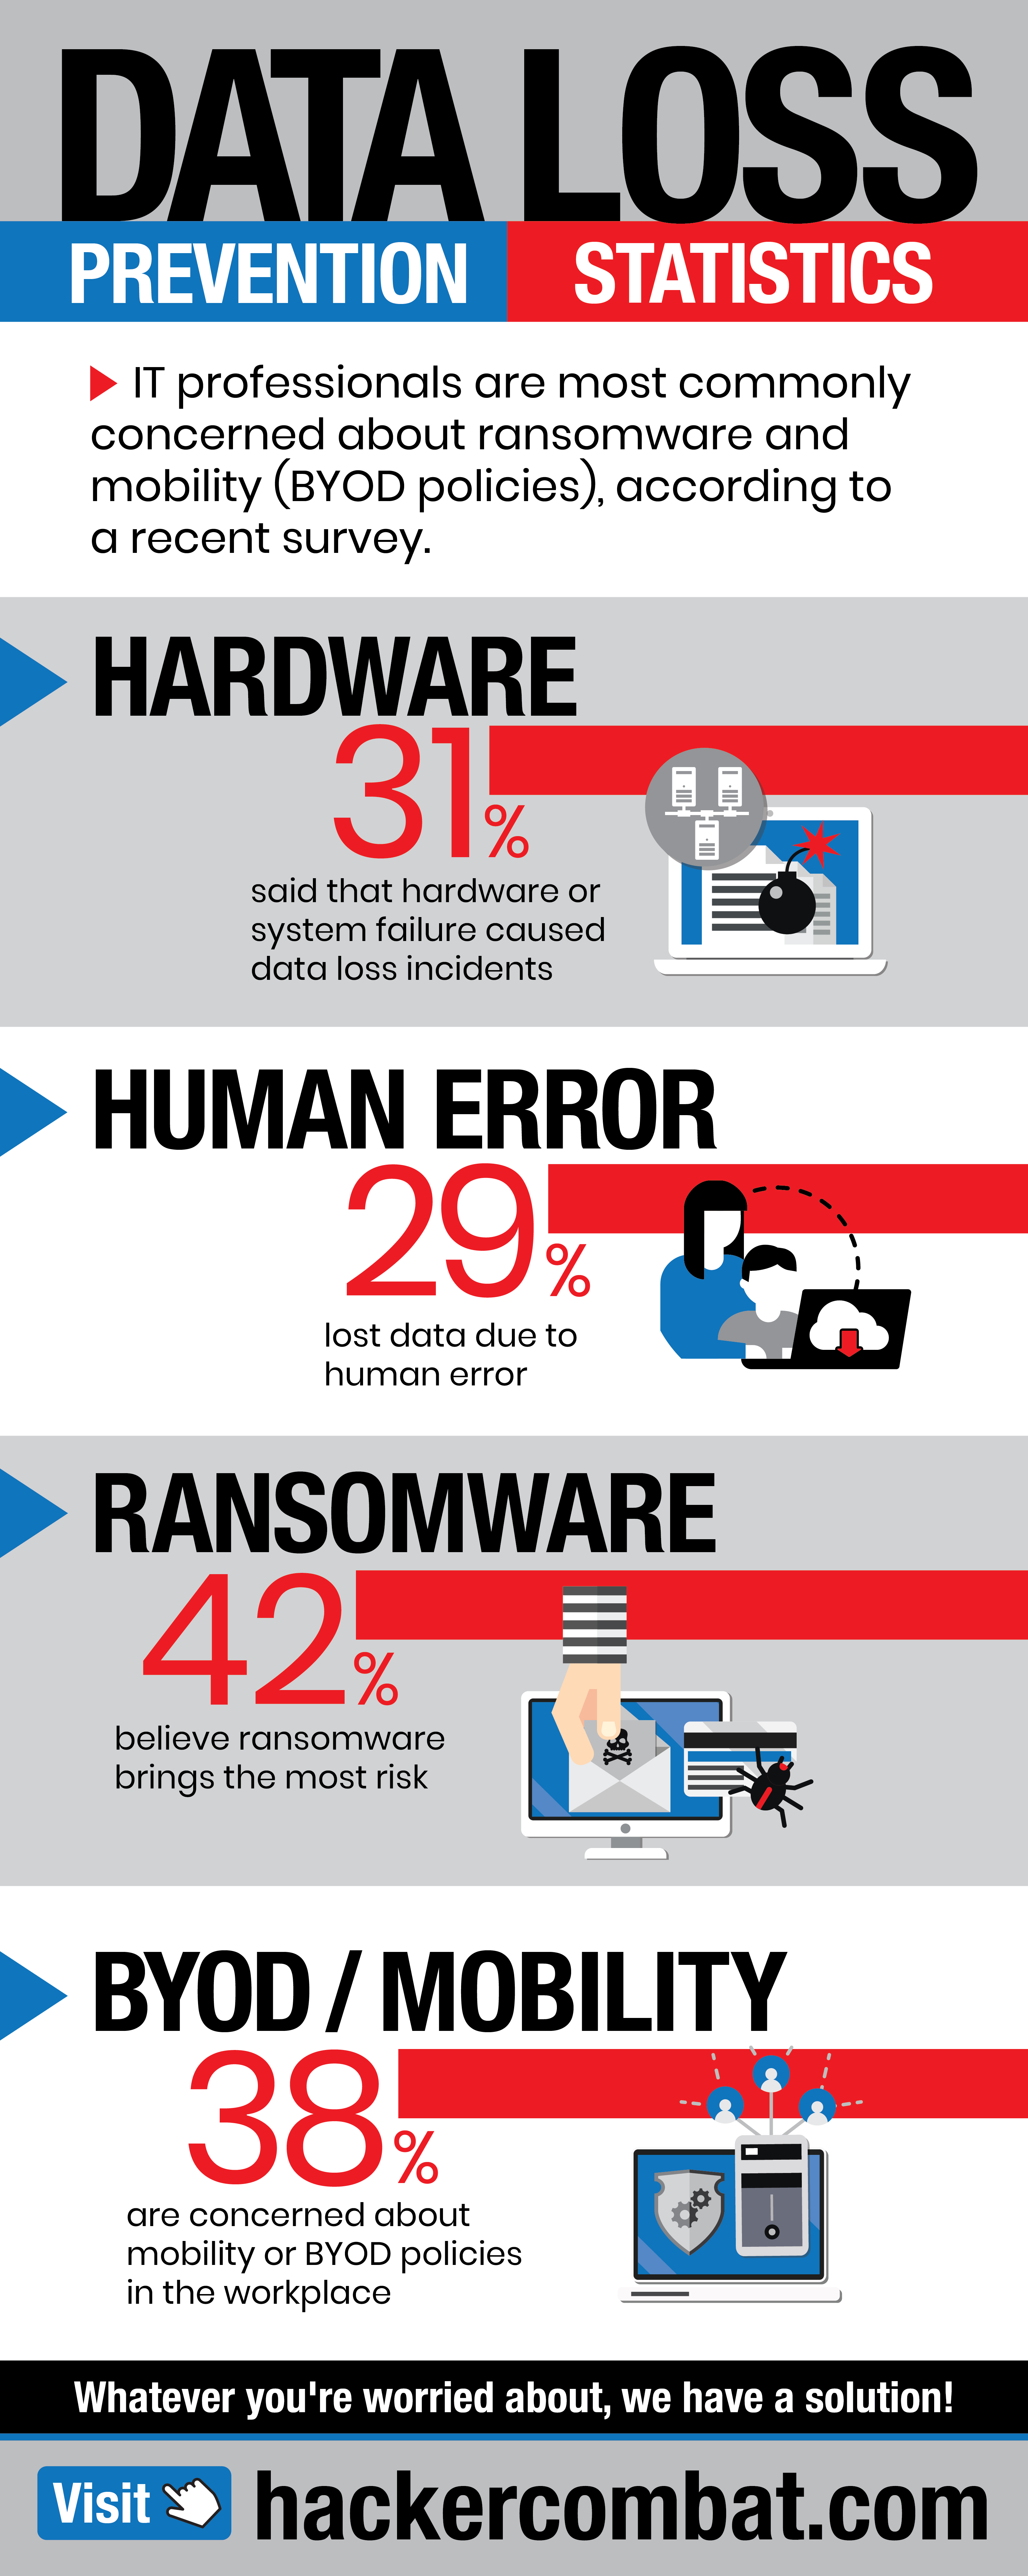 Data Loss Prevention And Statistics [Infographic]